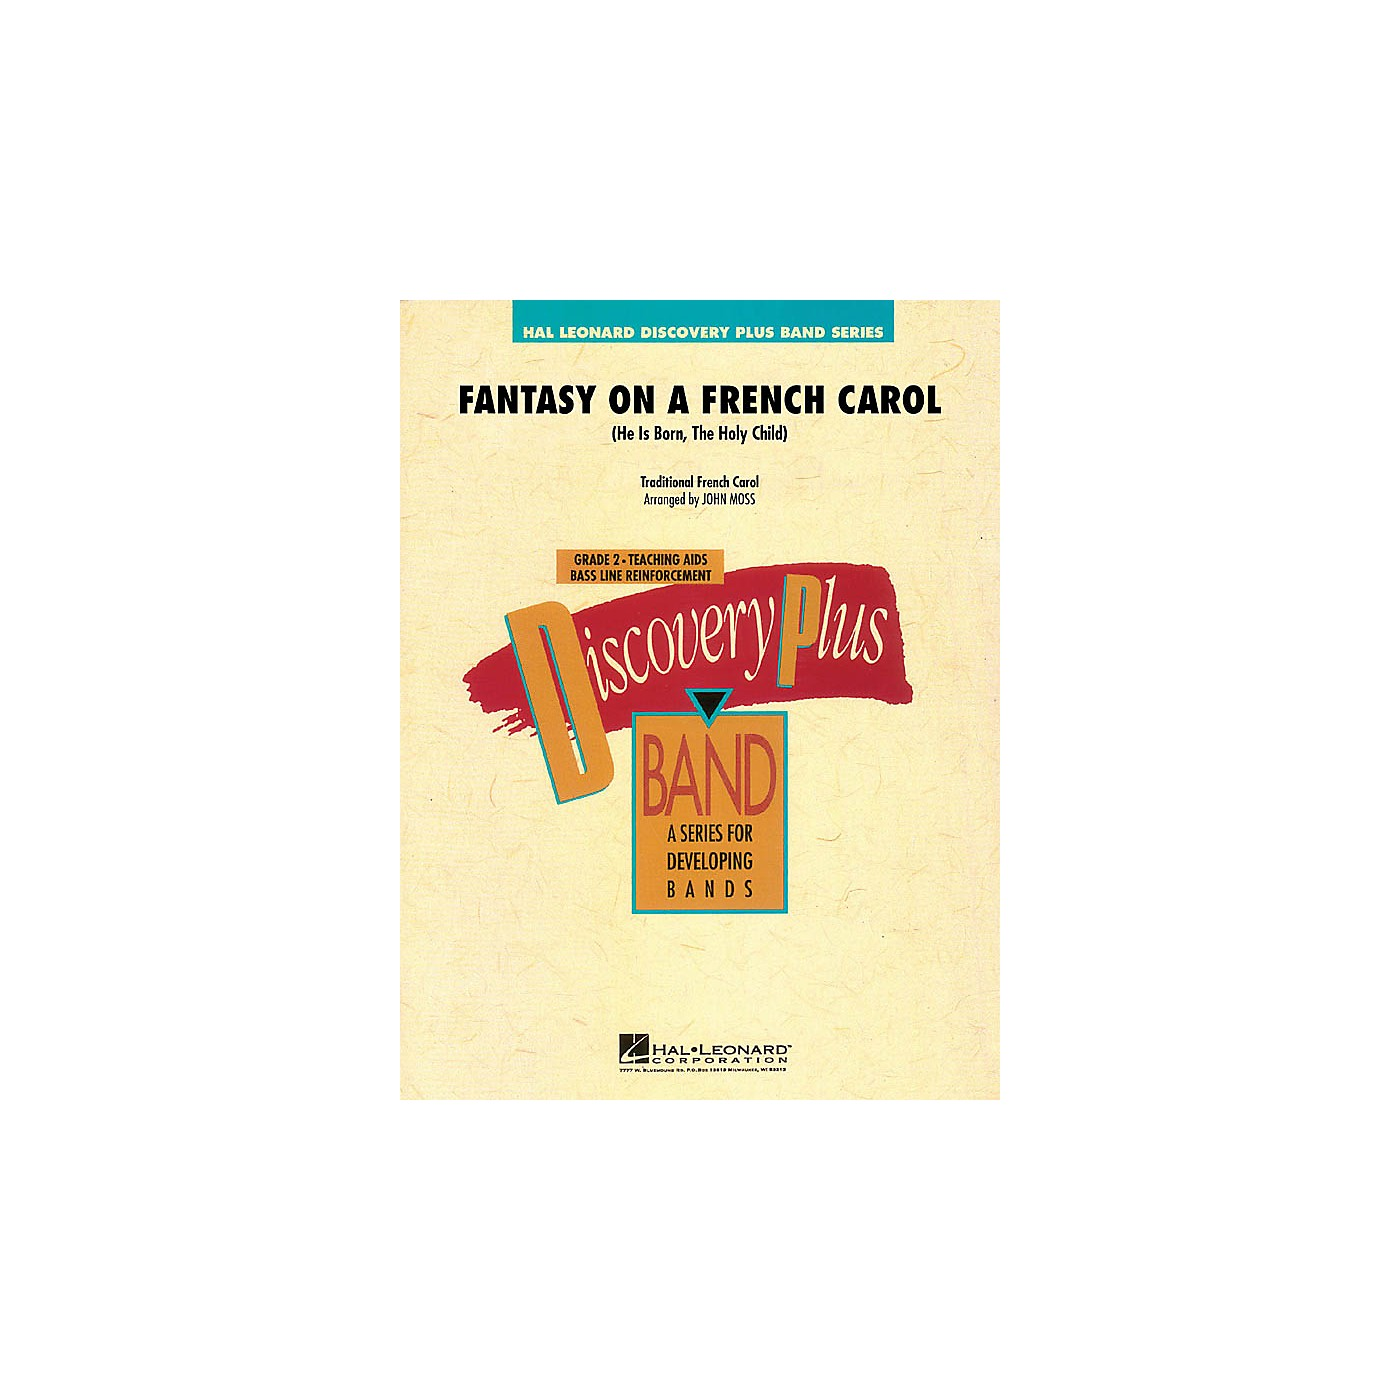 Hal Leonard Fantasy on a French Carol - Discovery Plus Band Level 2 arranged by John Moss thumbnail